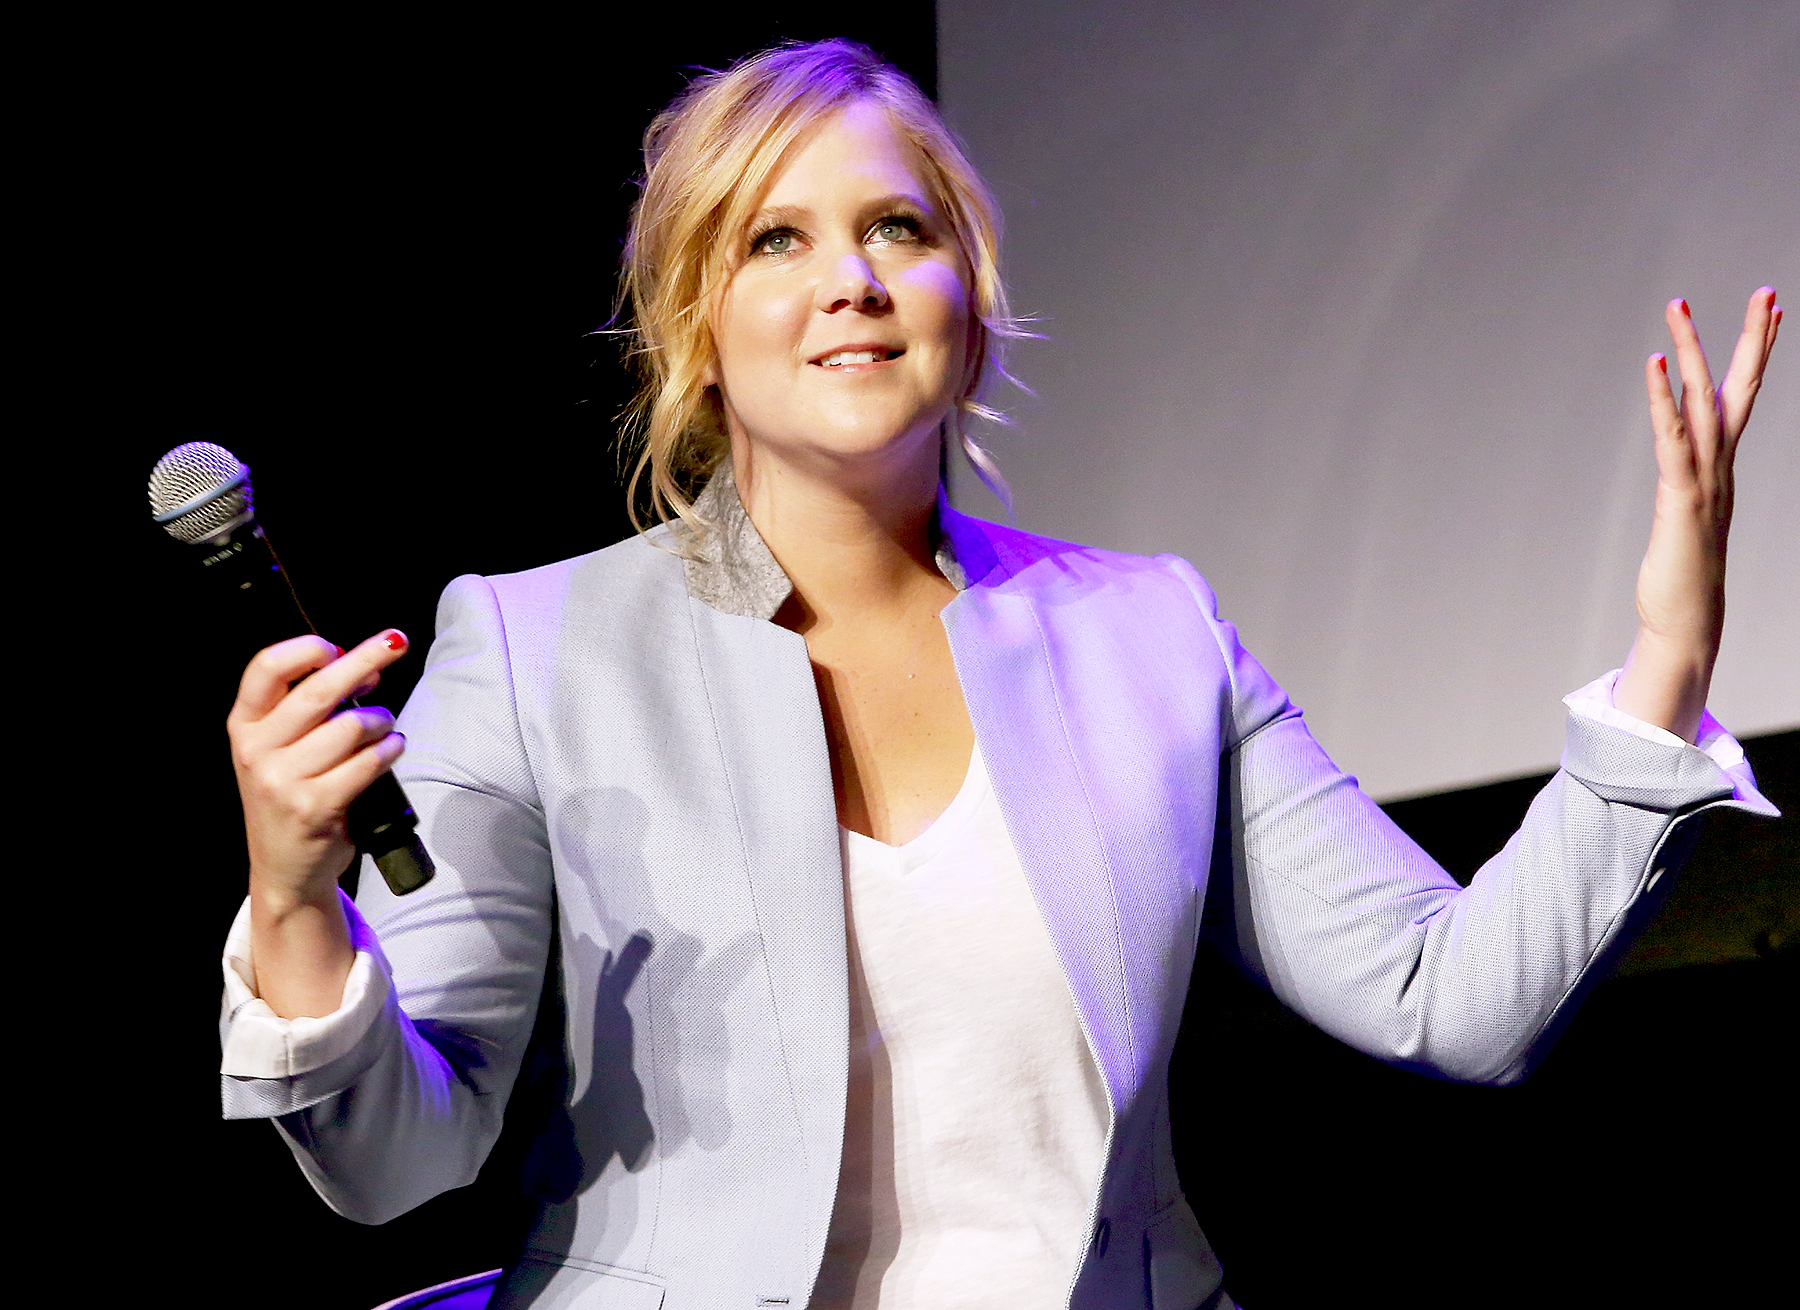 Amy Schumer speaks at Tribeca Talks: After the Movie: Inside Amy Schumer during the 2015 Tribeca Film Festival at Spring Studio on April 19, 2015 in New York City.